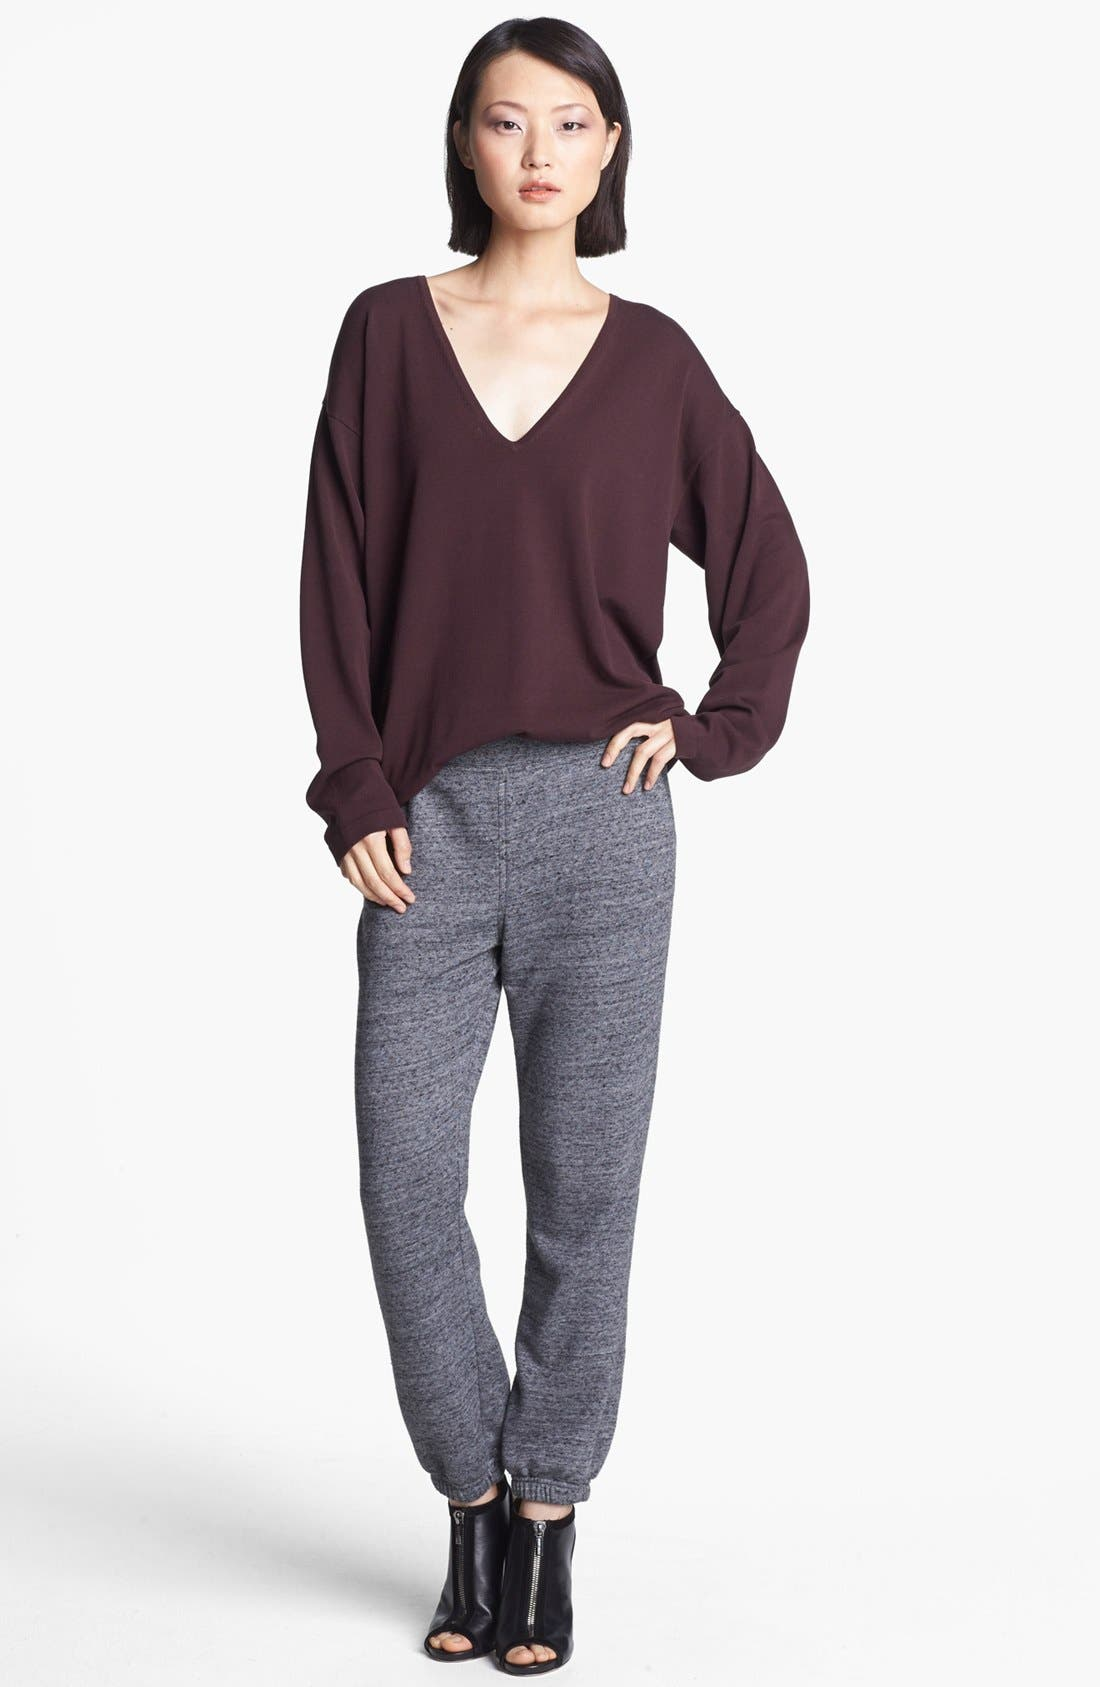 Alternate Image 1 Selected - T by Alexander Wang Pullover & Sweatpants